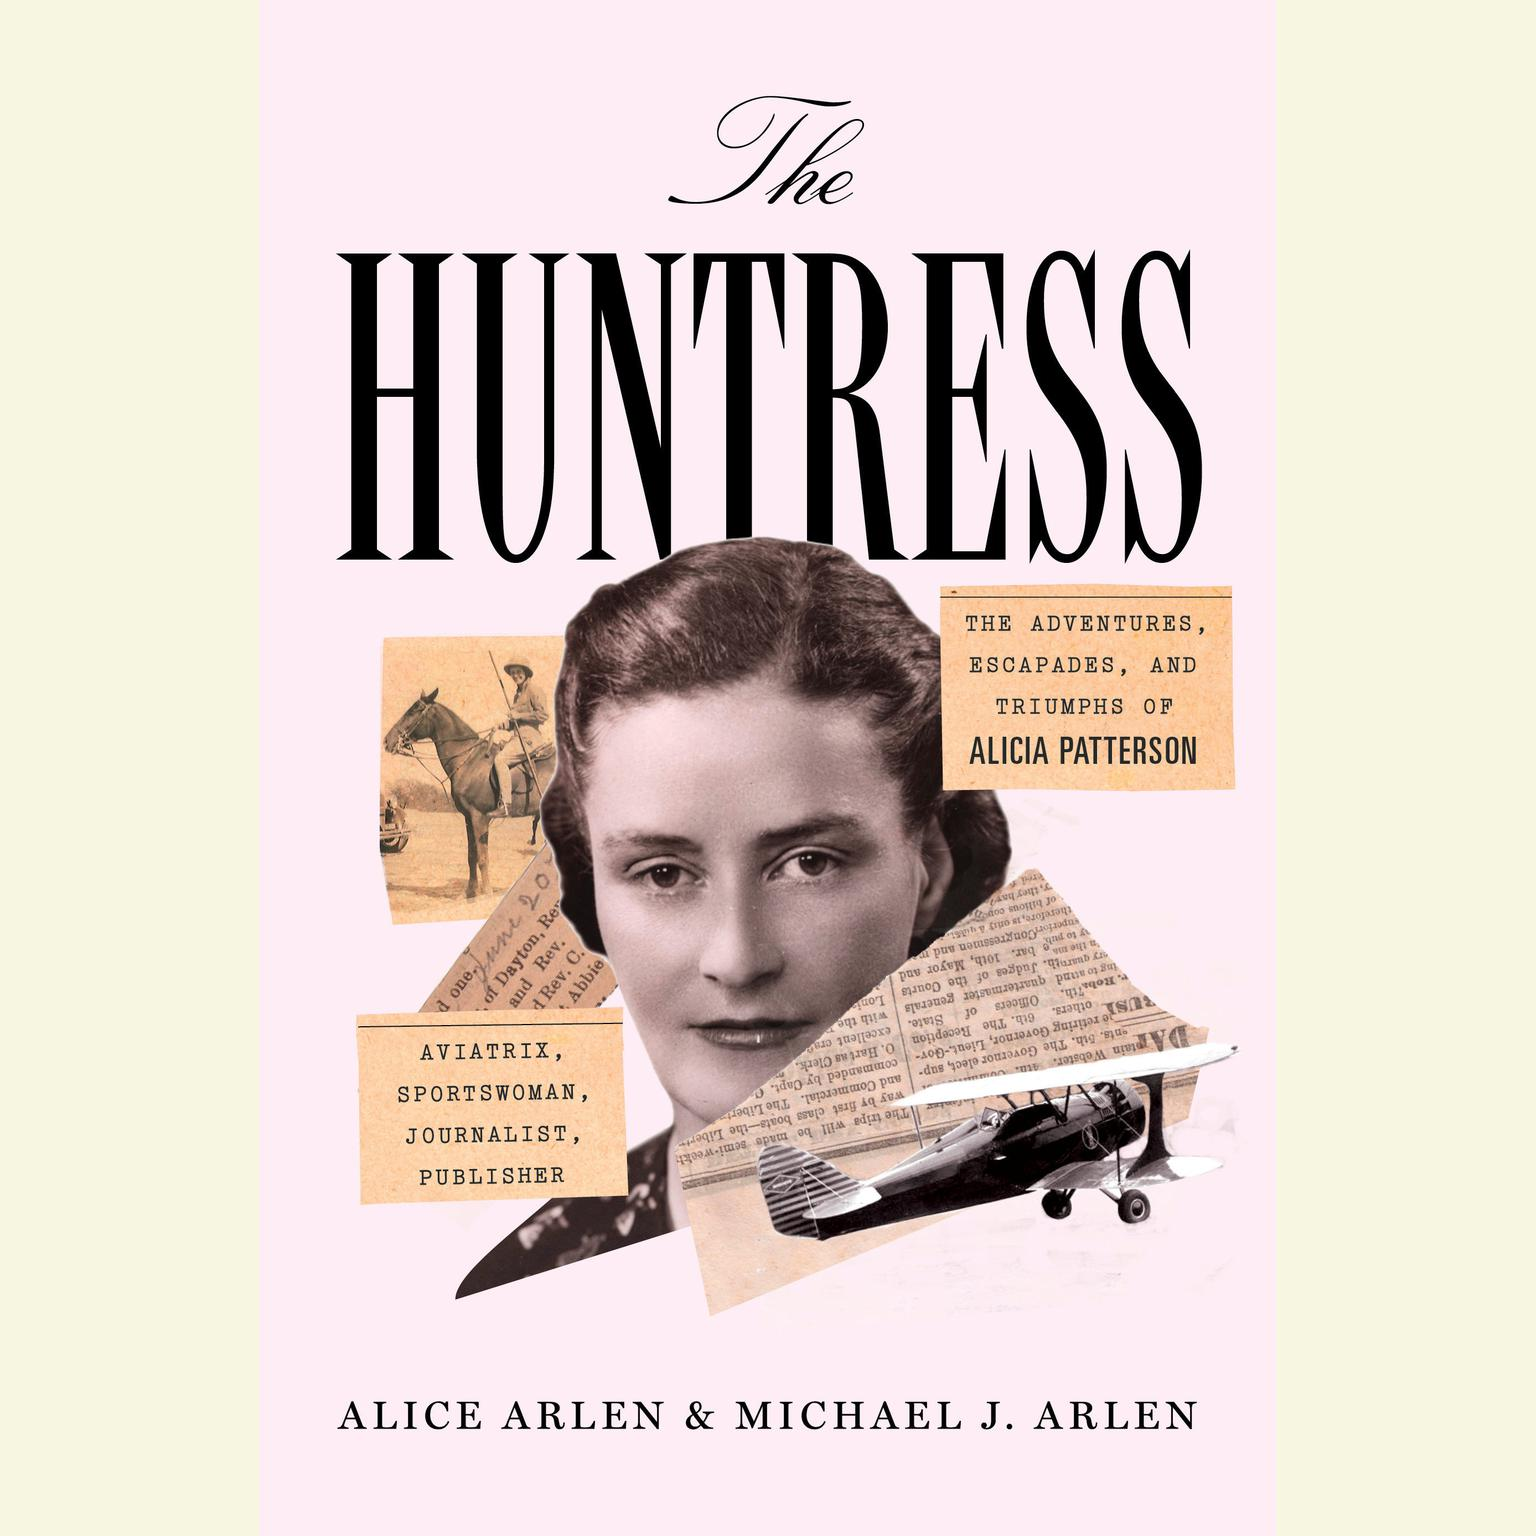 Printable The Huntress: The Adventures, Escapades, and Triumphs of Alicia Patterson: Aviatrix, Sportswoman, Journalist, Publisher Audiobook Cover Art